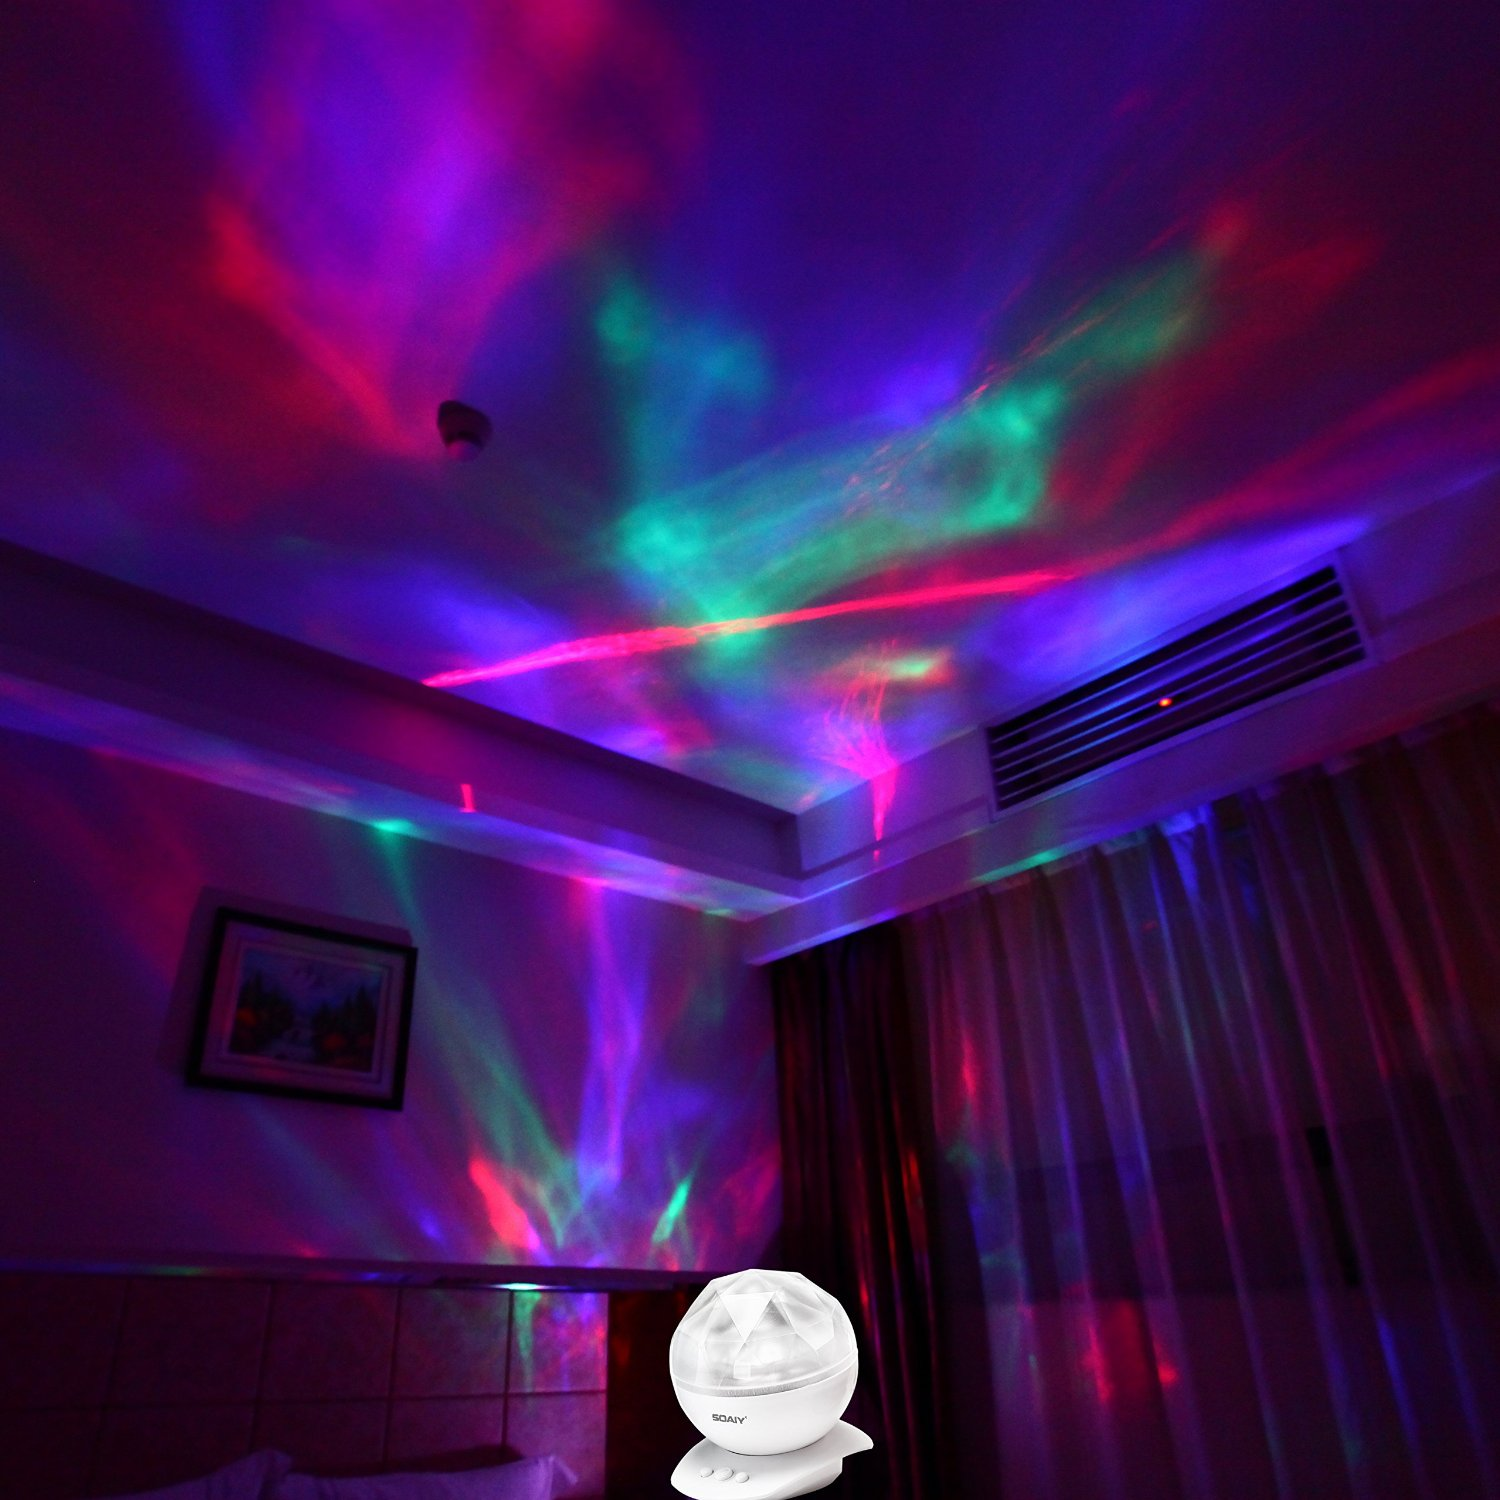 Light Projector Soaiy Led Ocean Wave Night Light Projector Sleep Soothing Color Changing White Noise Machine With 8 Colors Light Show Projection Built In Soft Music